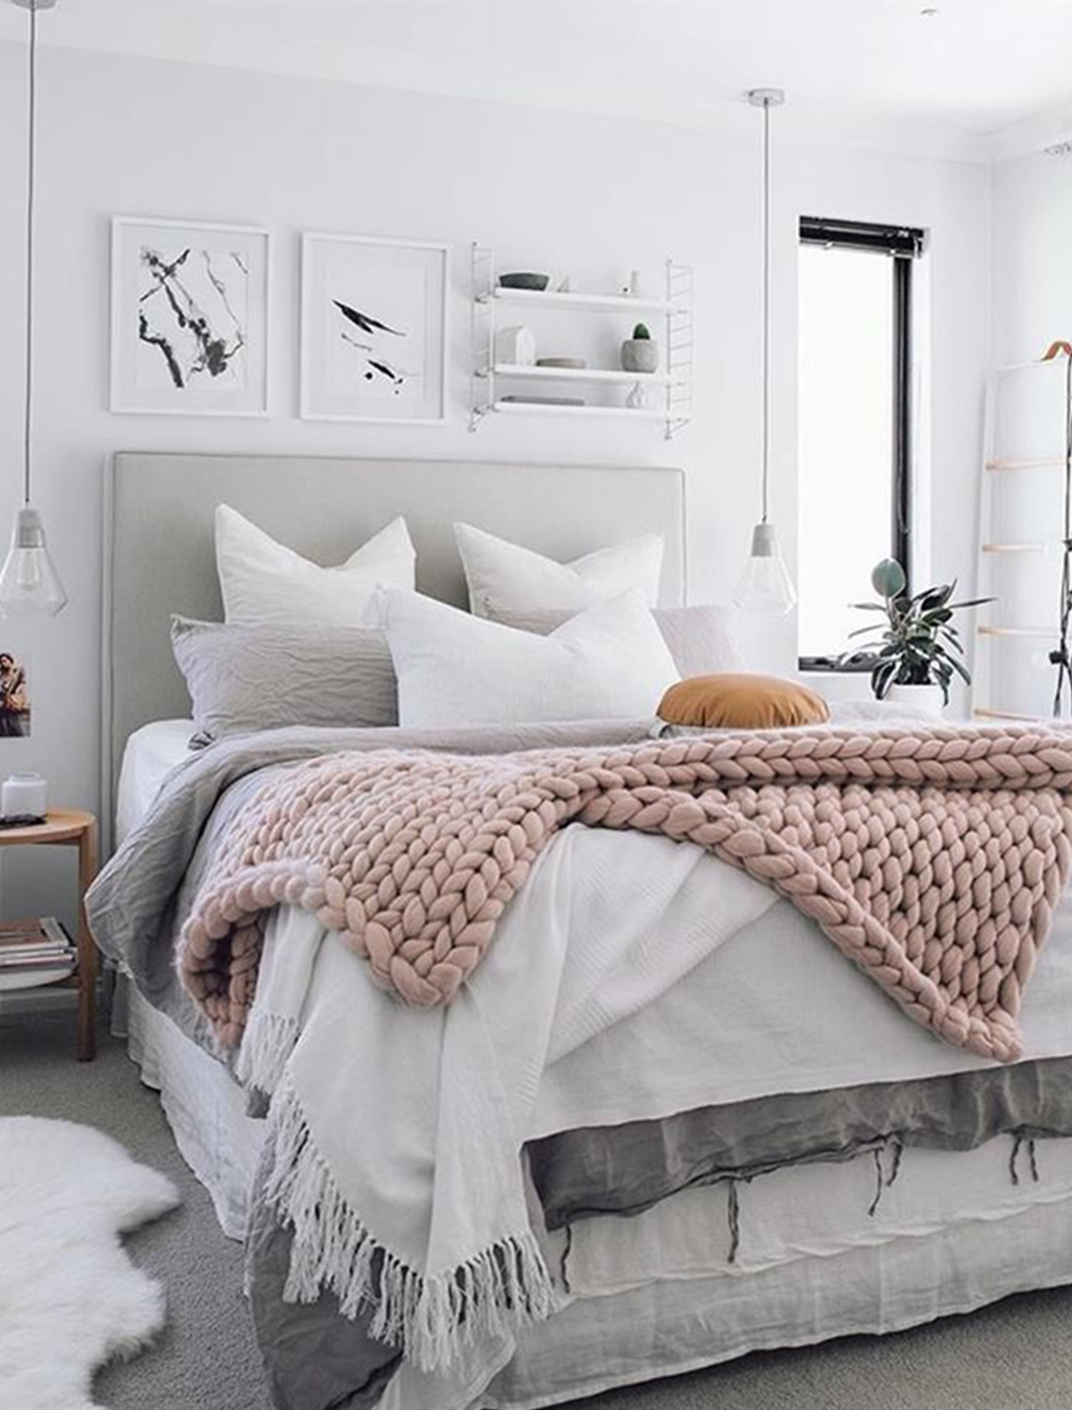 Bed Linen Decoration- an Important Part of Bedroom Decoration